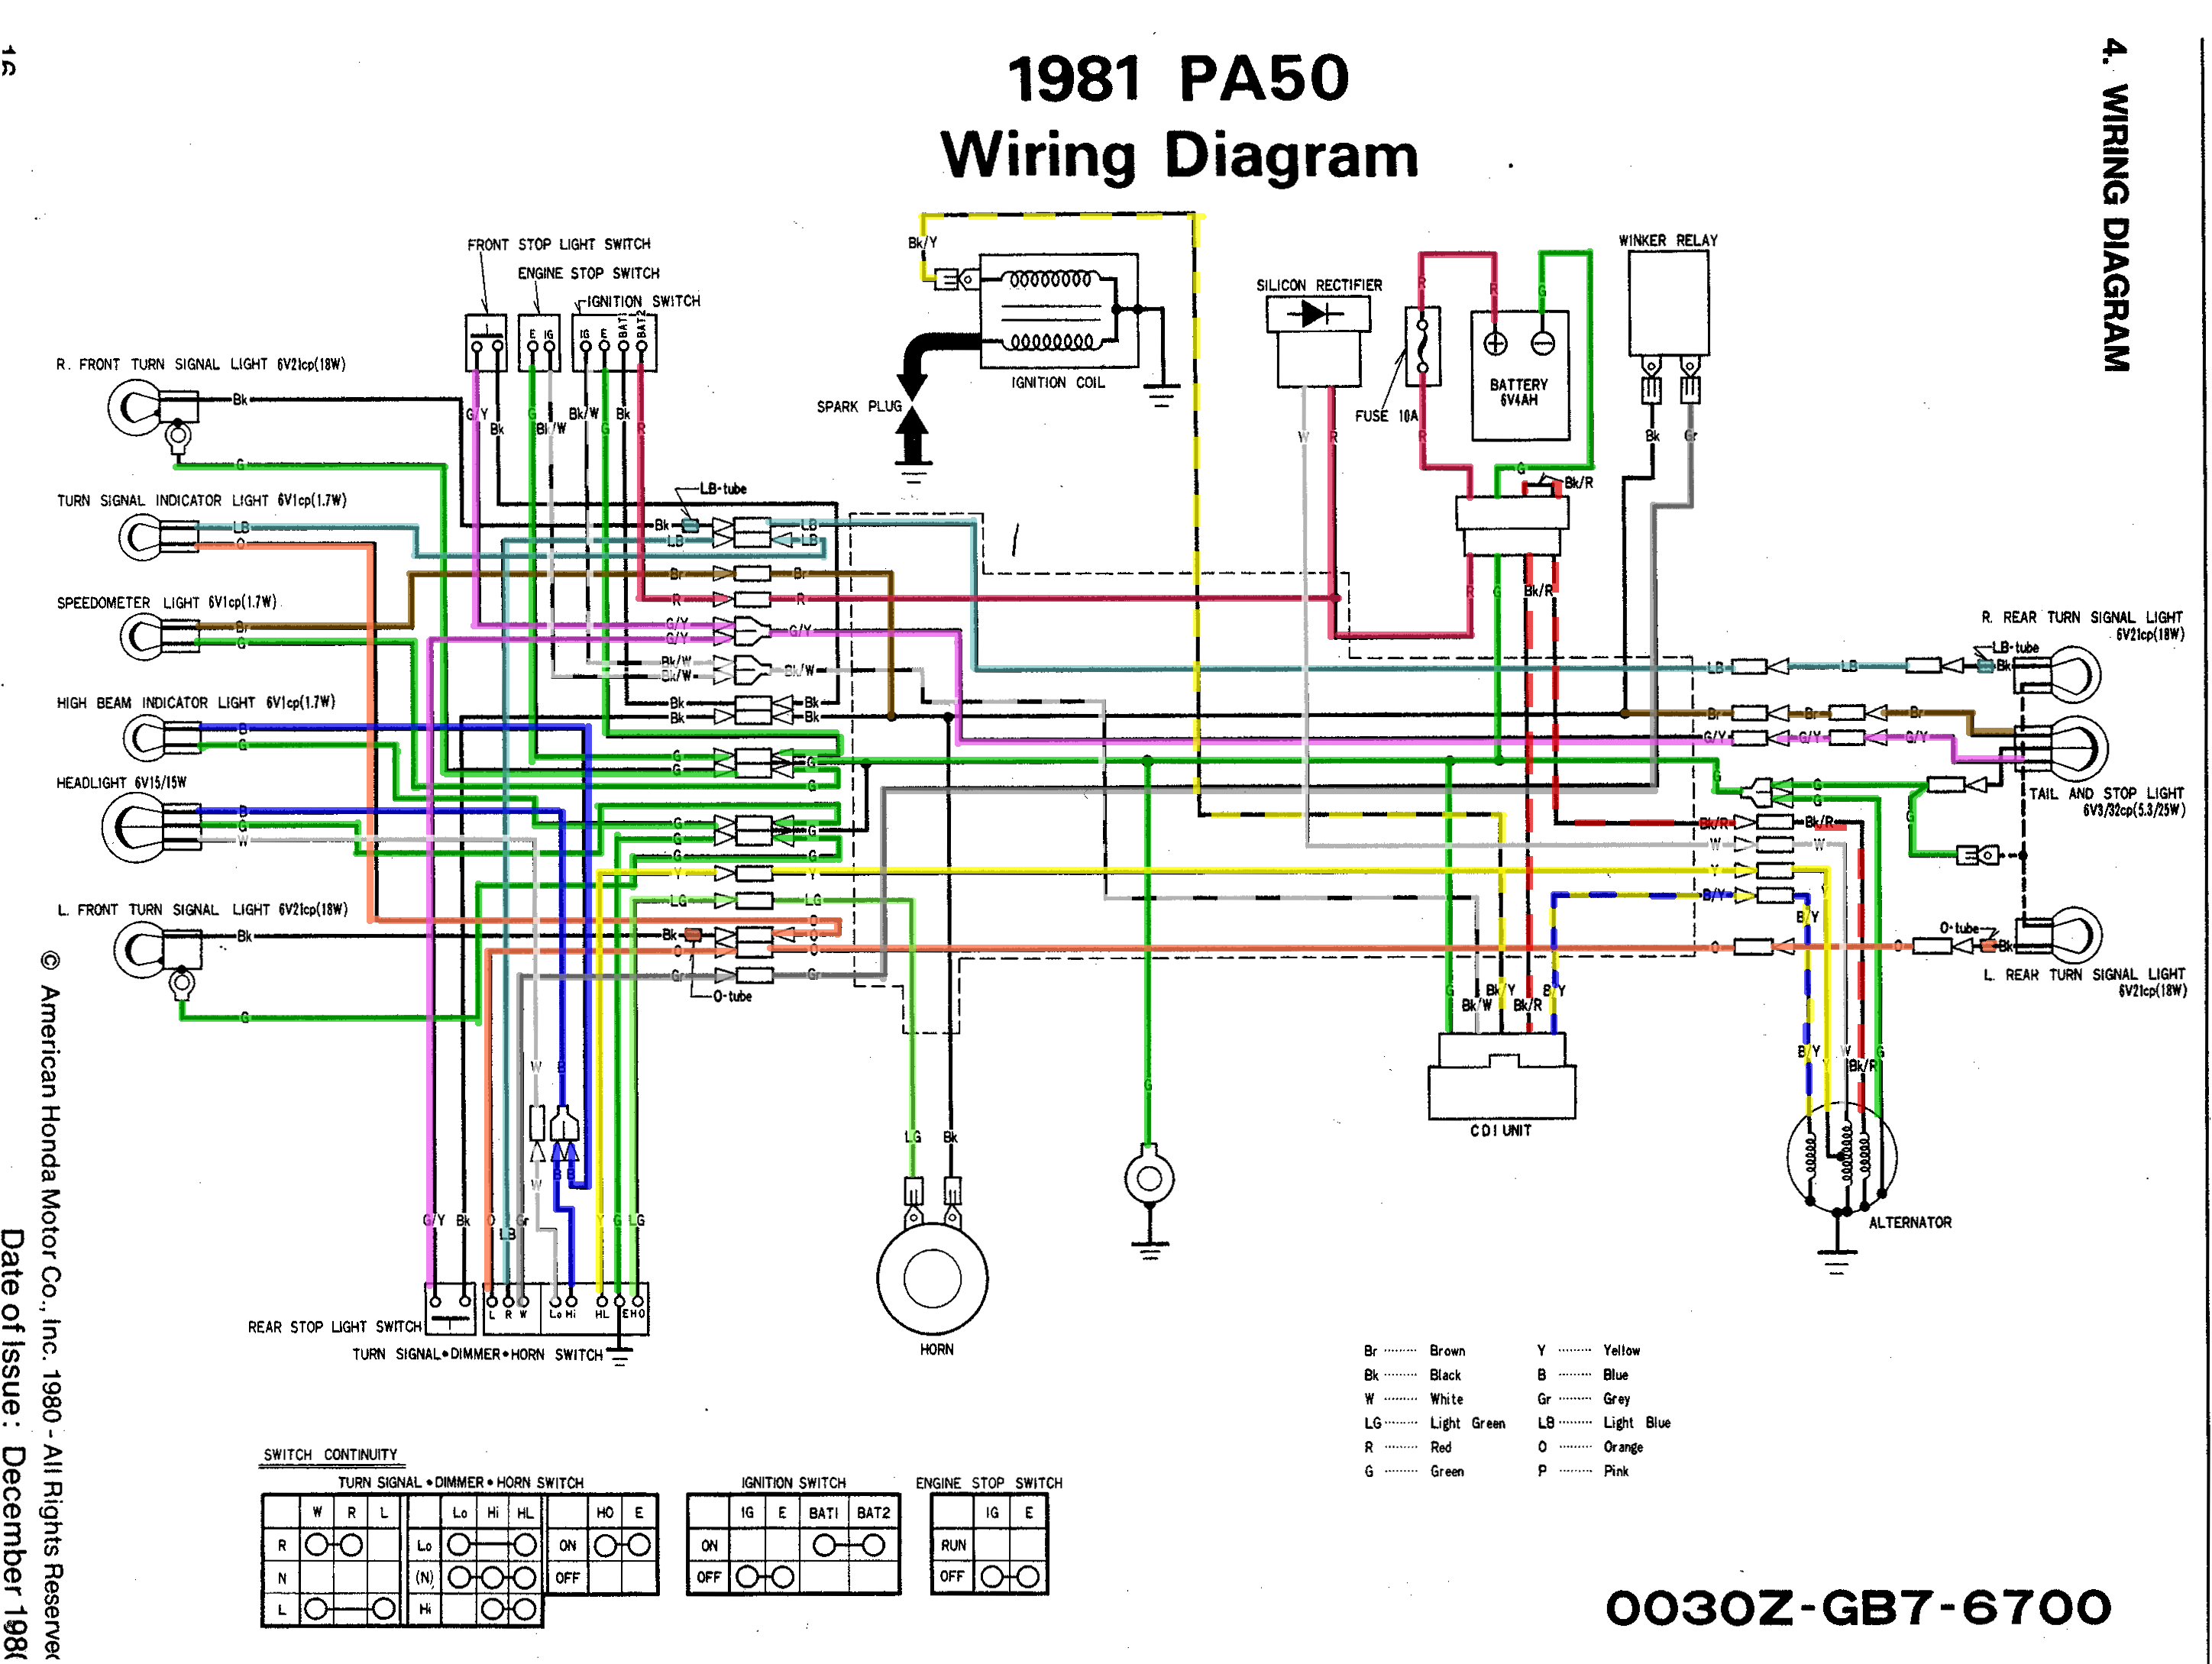 Stock Hobbit Cdi W Jog Box Wiring Diagram Moped Army Power Scooter Re